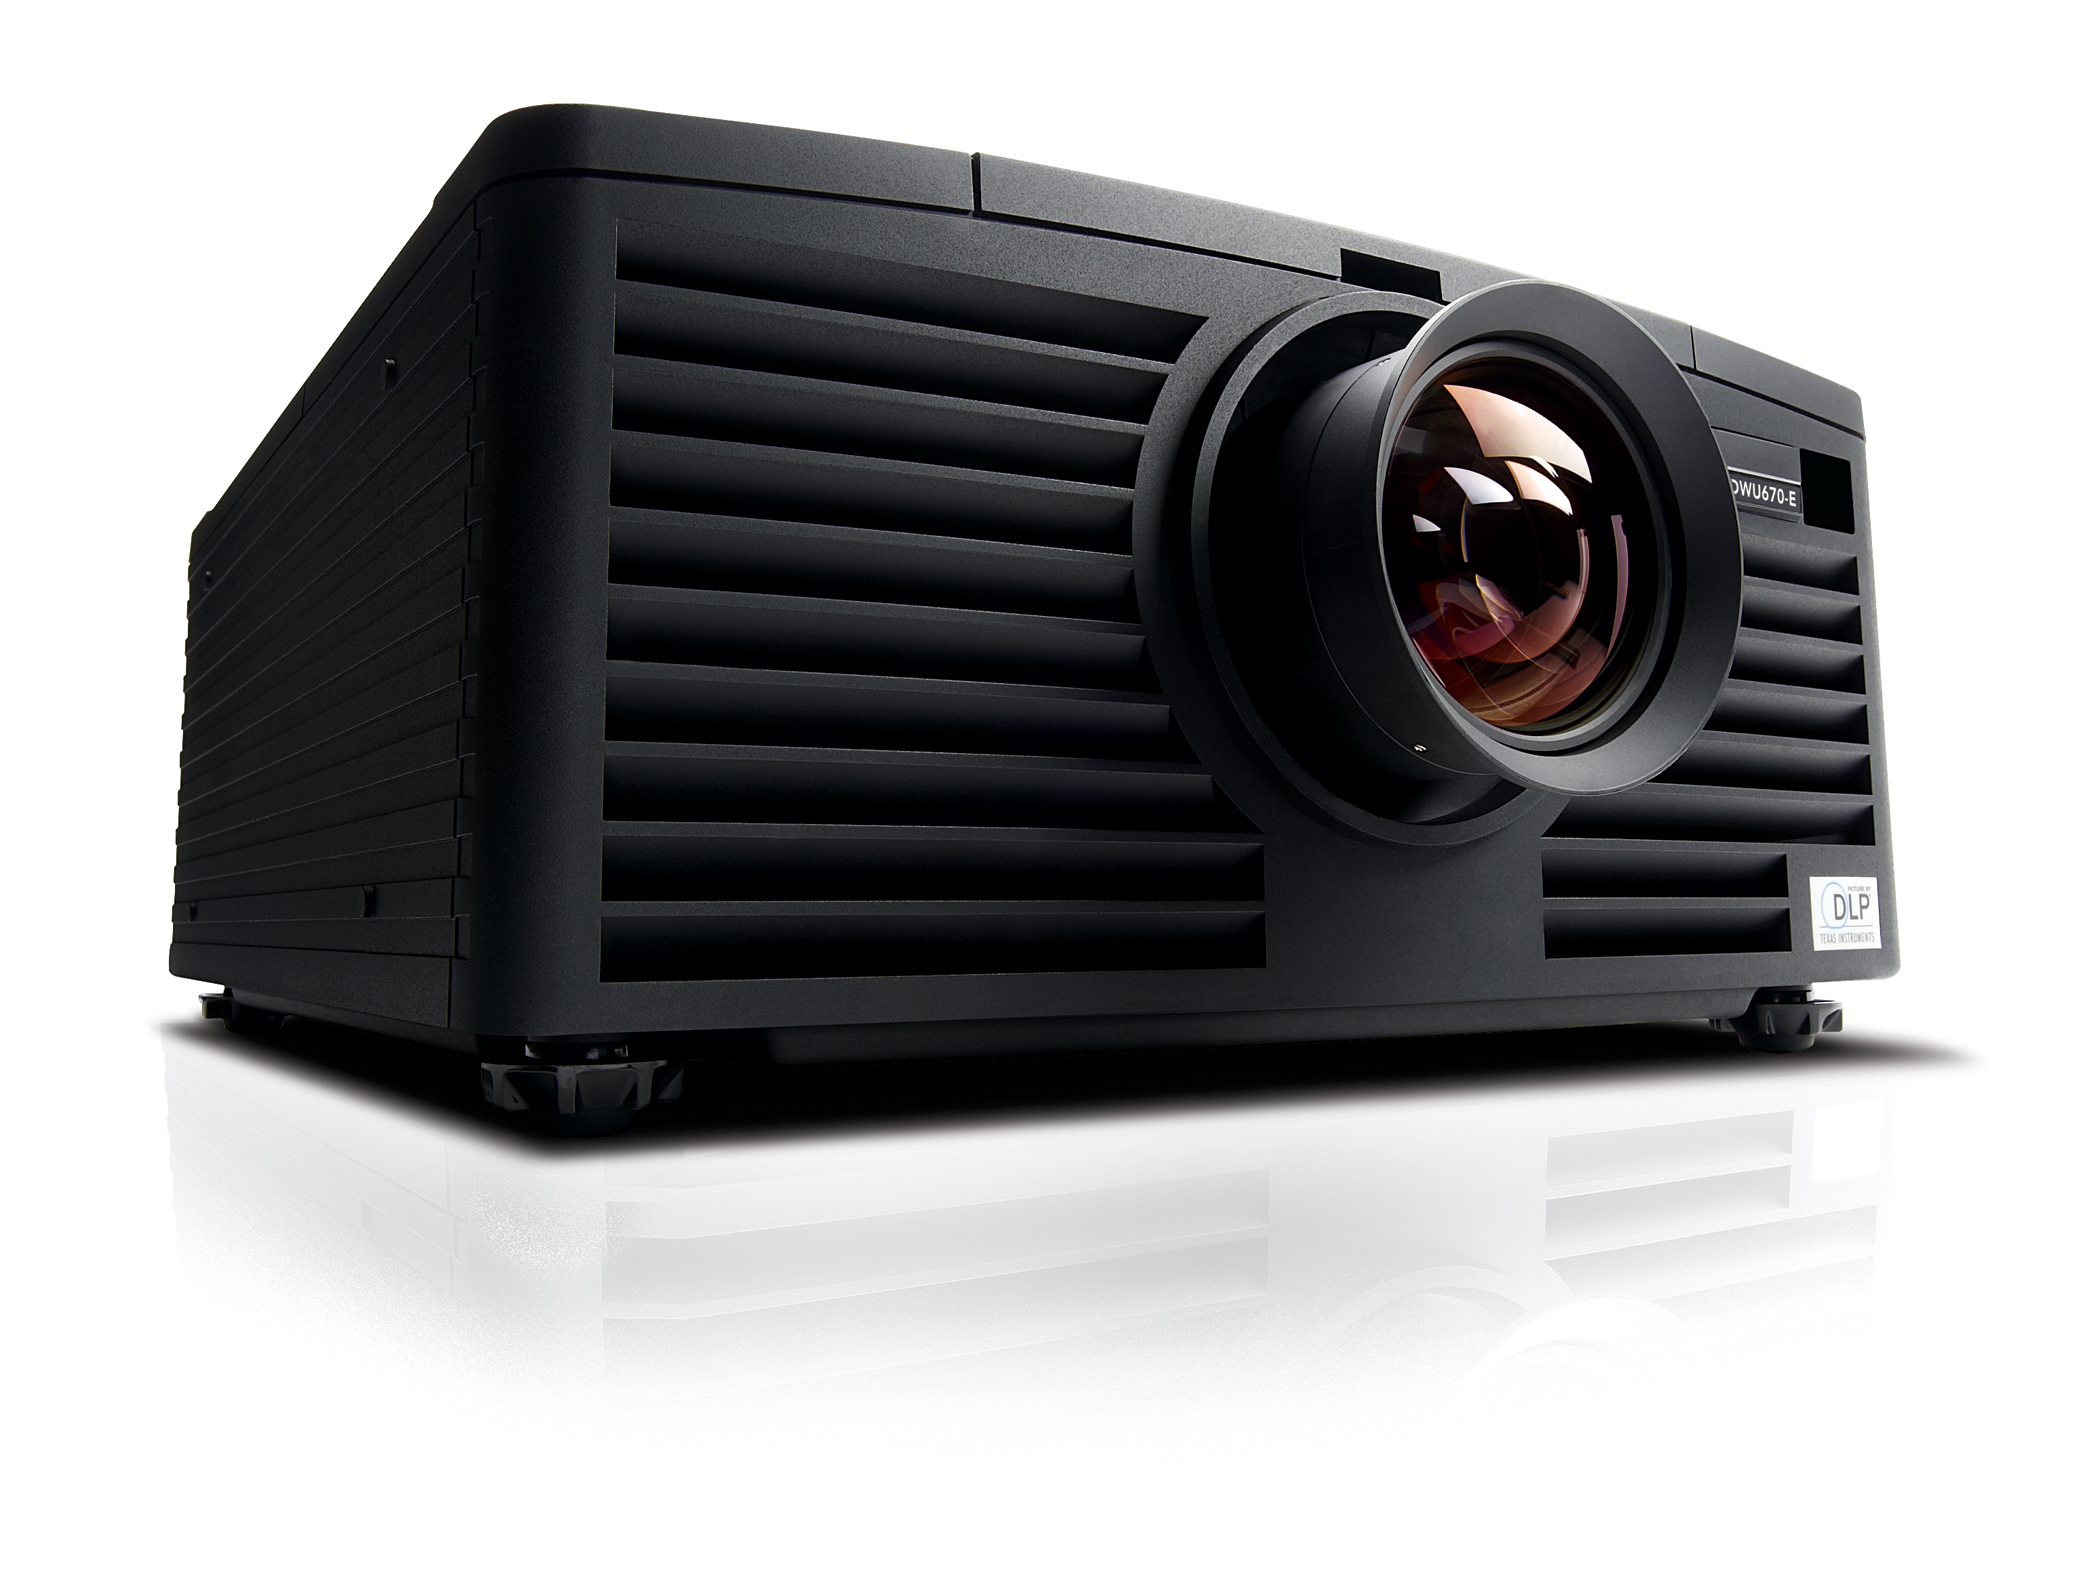 /globalassets/.catalog/products/images/christie-dwu670-e/gallery/christie-dwu670-e-dlp-digital-projector-low-left.jpg